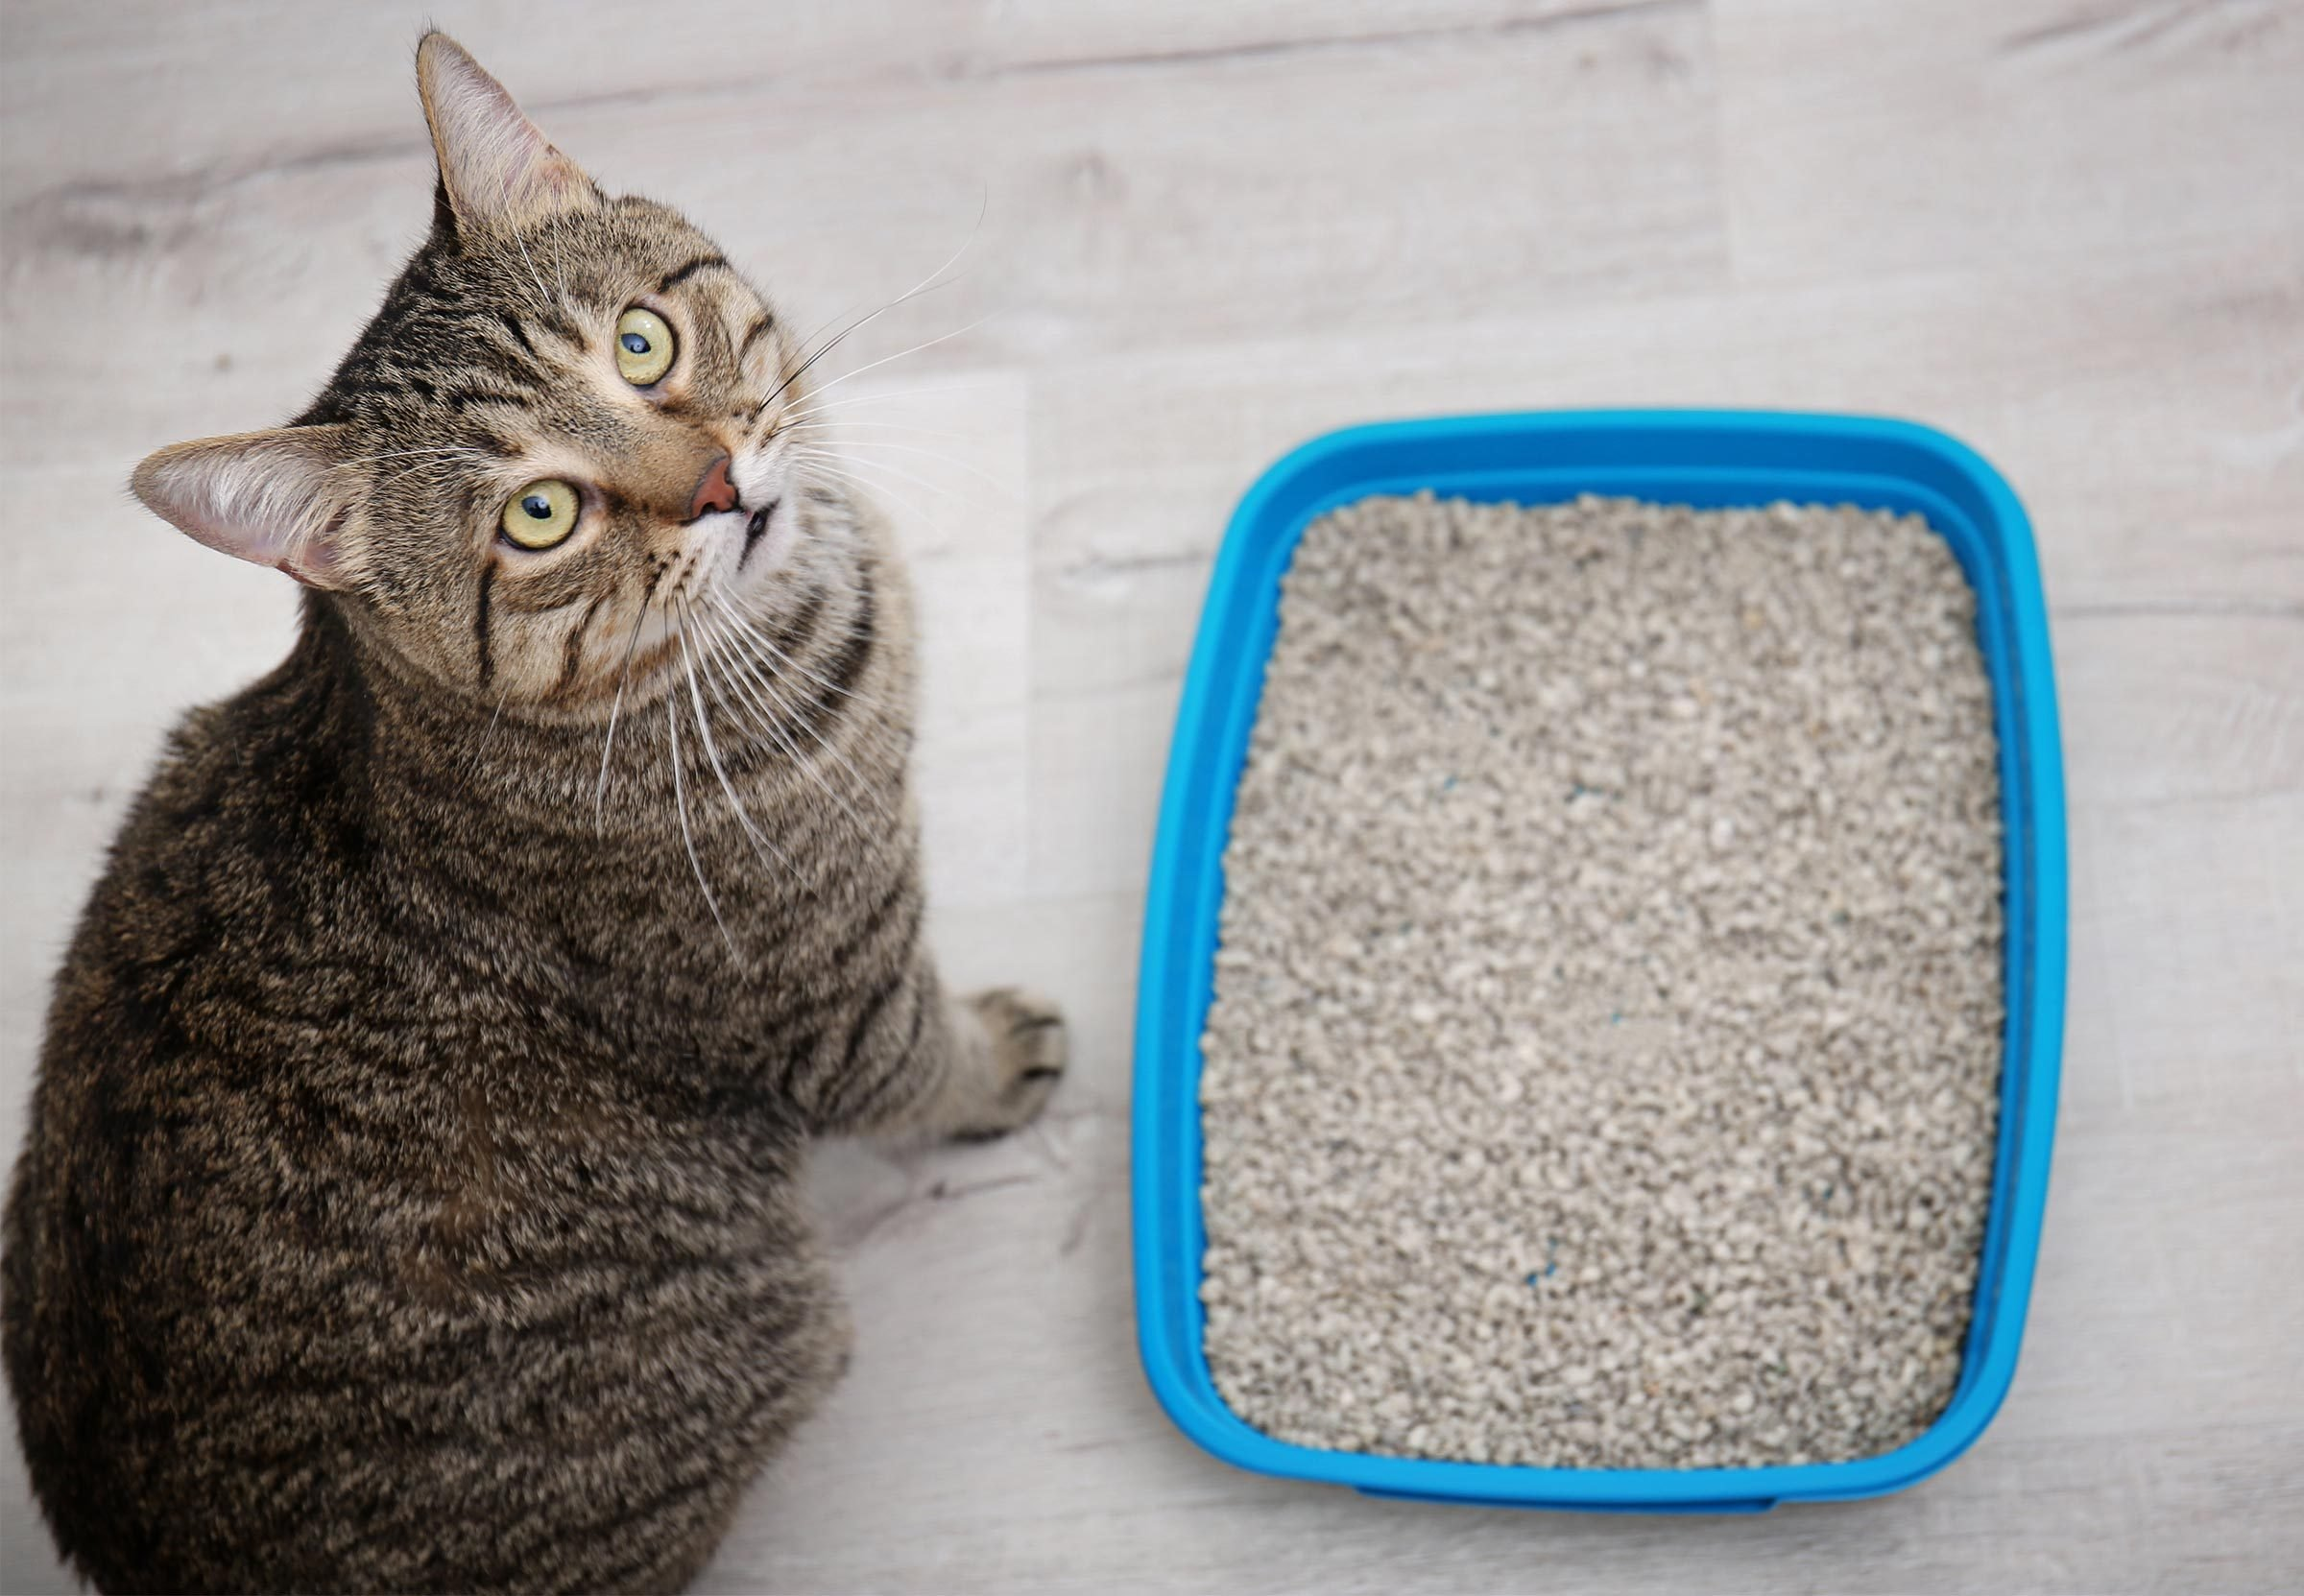 How to get rid of cat pee smell from carpet